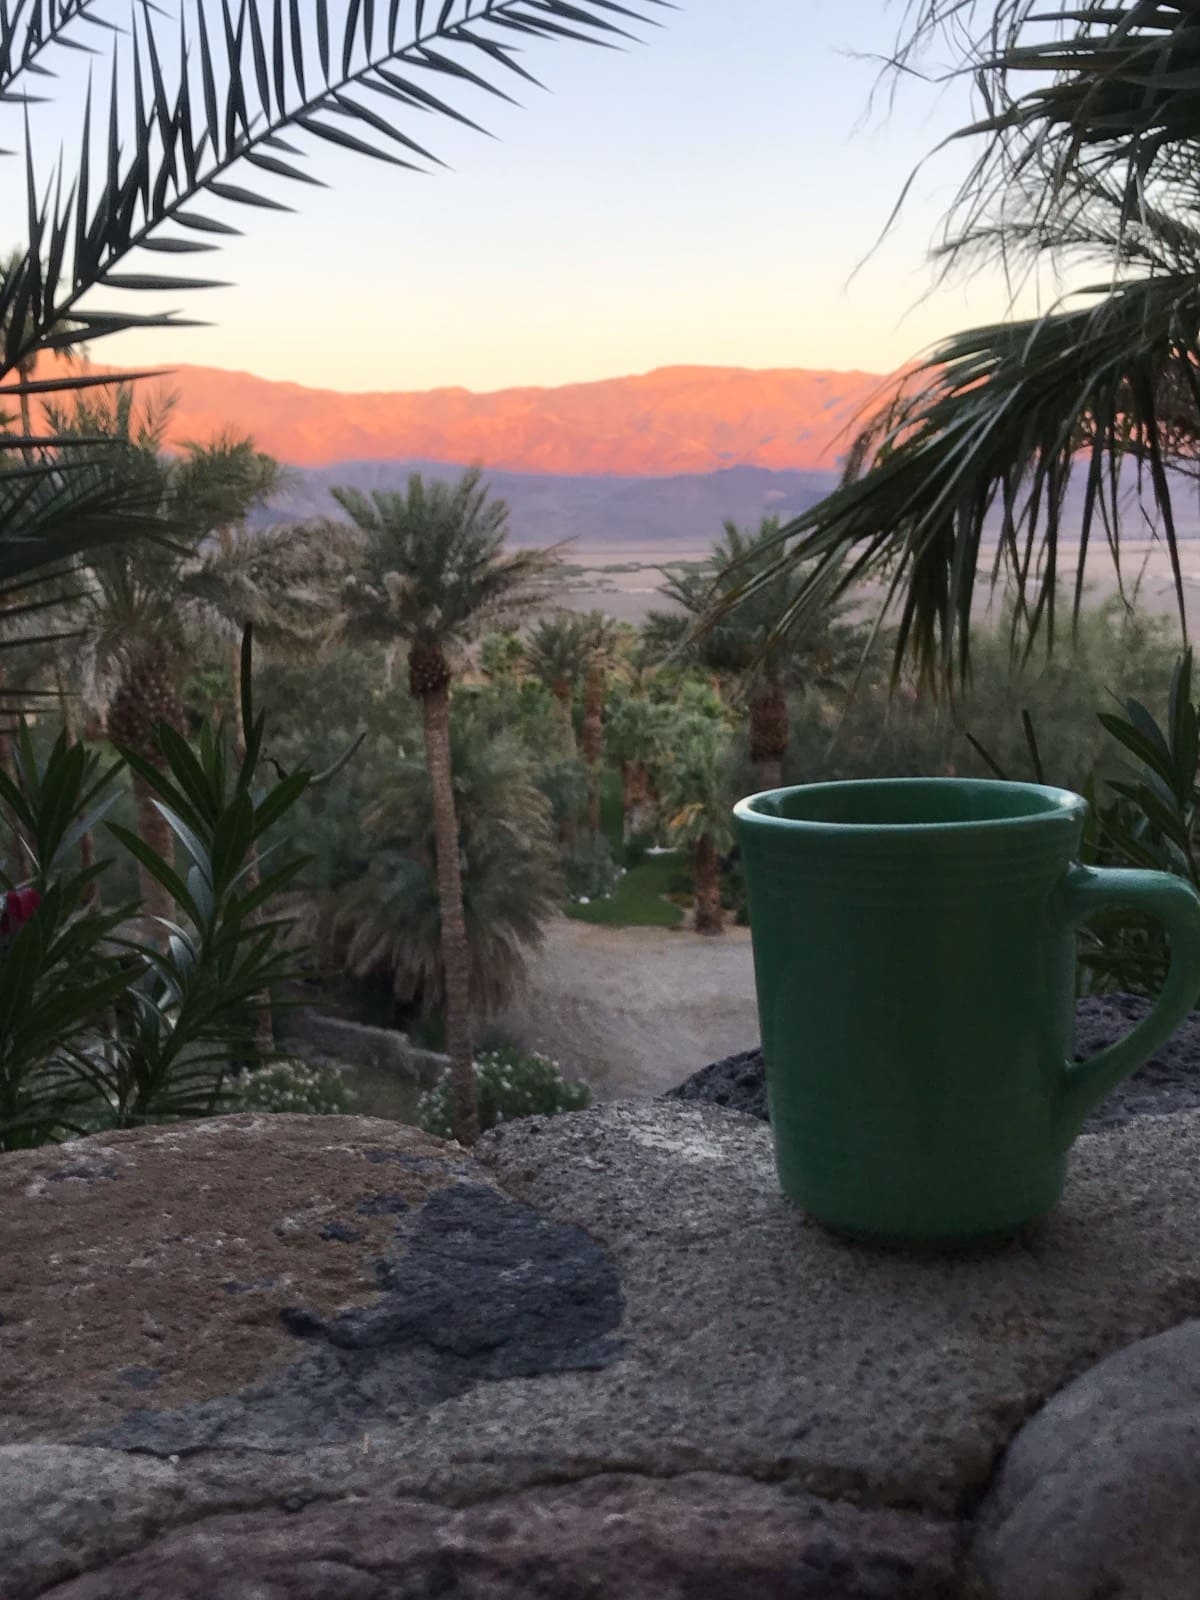 Sunrise at Death Valley